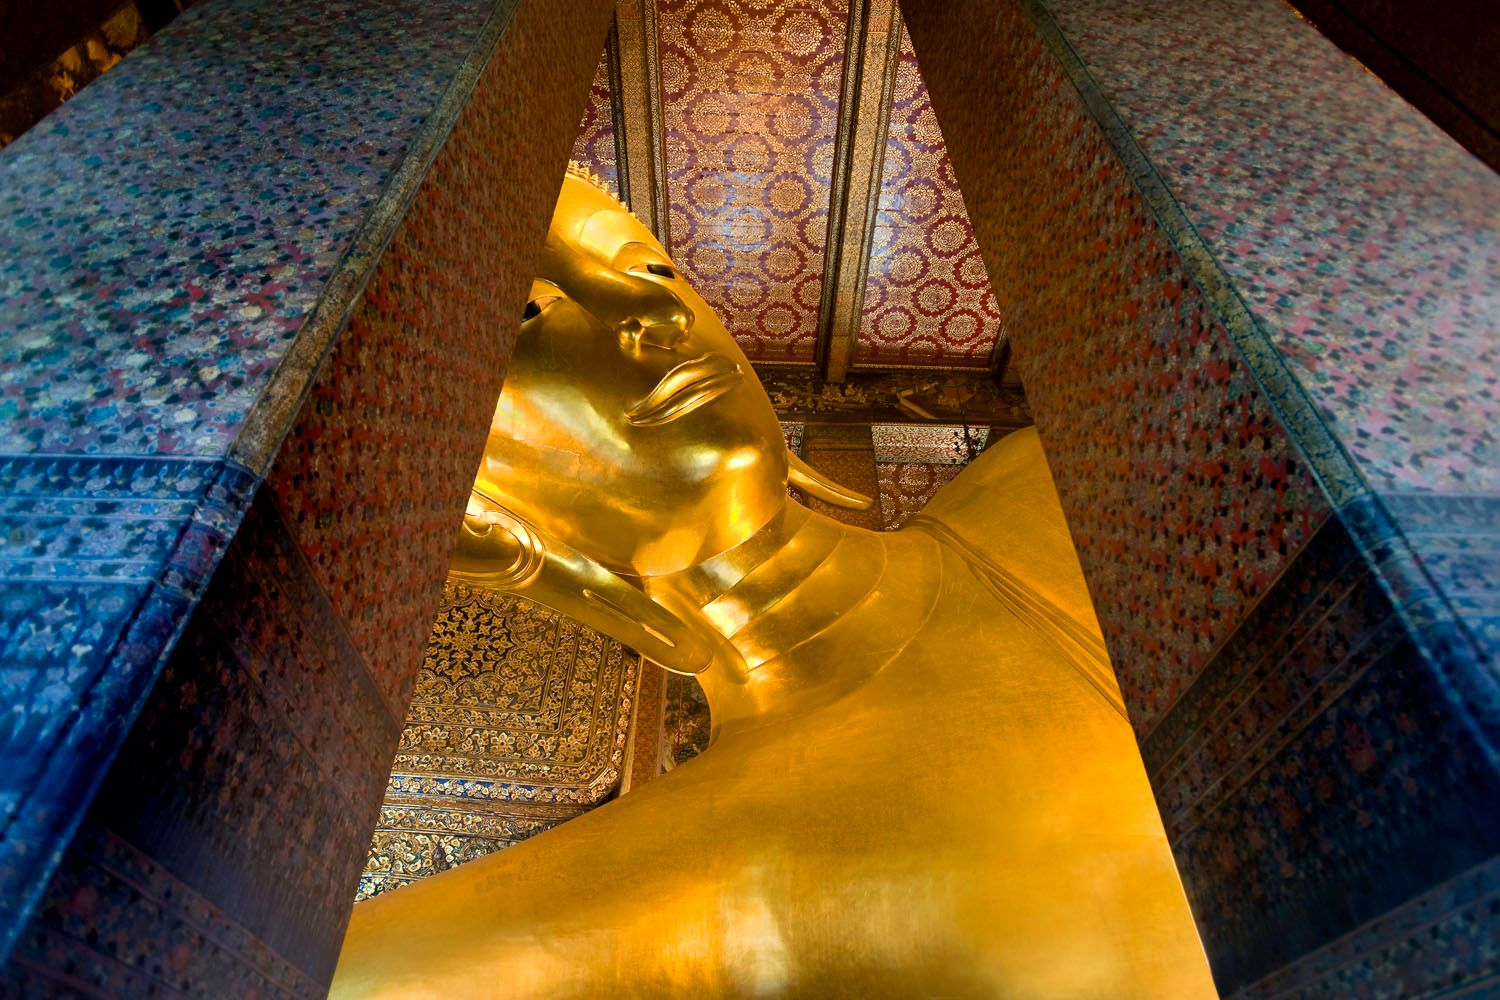 Golden Buddha at Wat Pho